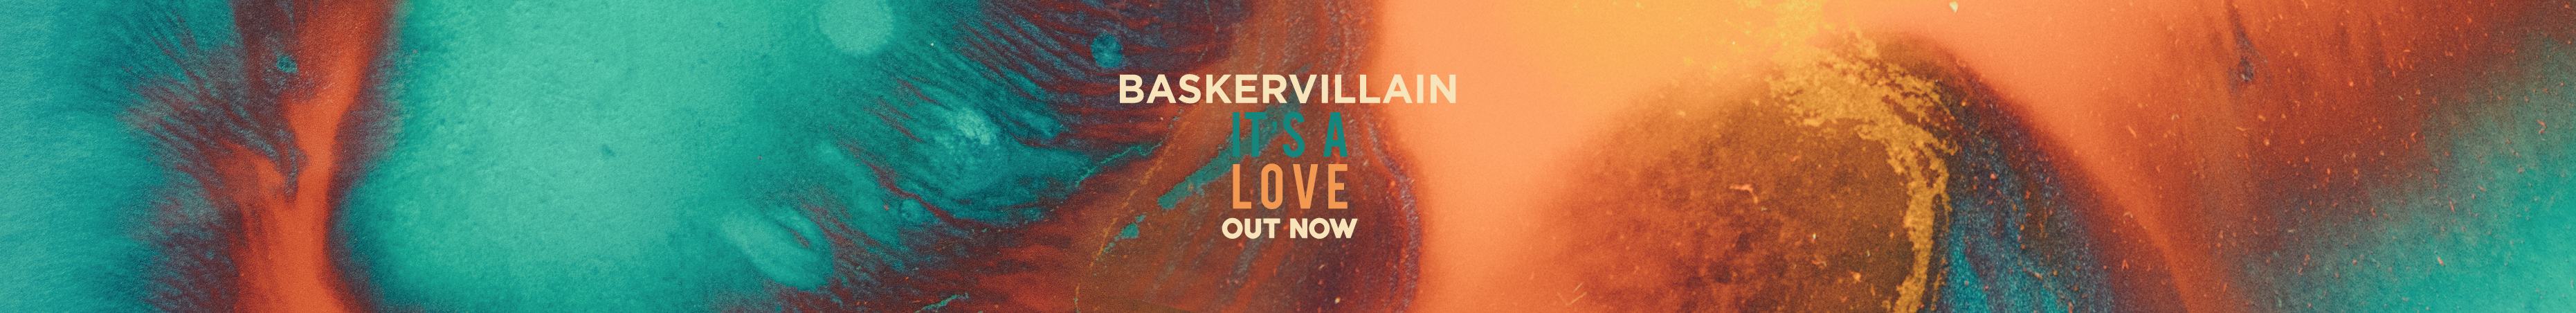 Baskervillain_ITSALOVE_banner copy